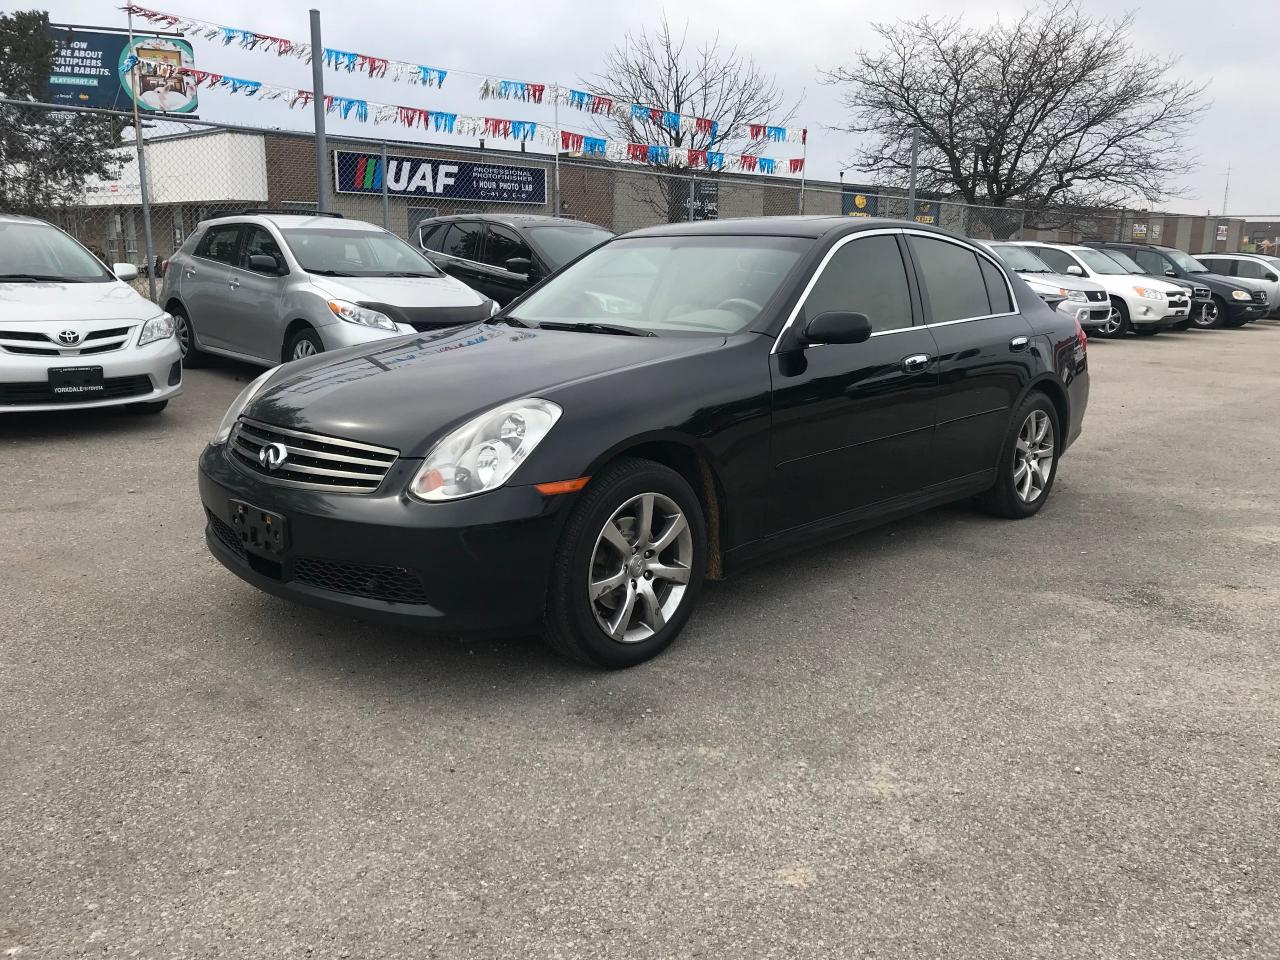 hight resolution of used 2005 infiniti g35x auto awd 4doors 139k safety 3years warranty includ for sale in toronto ontario carpages ca